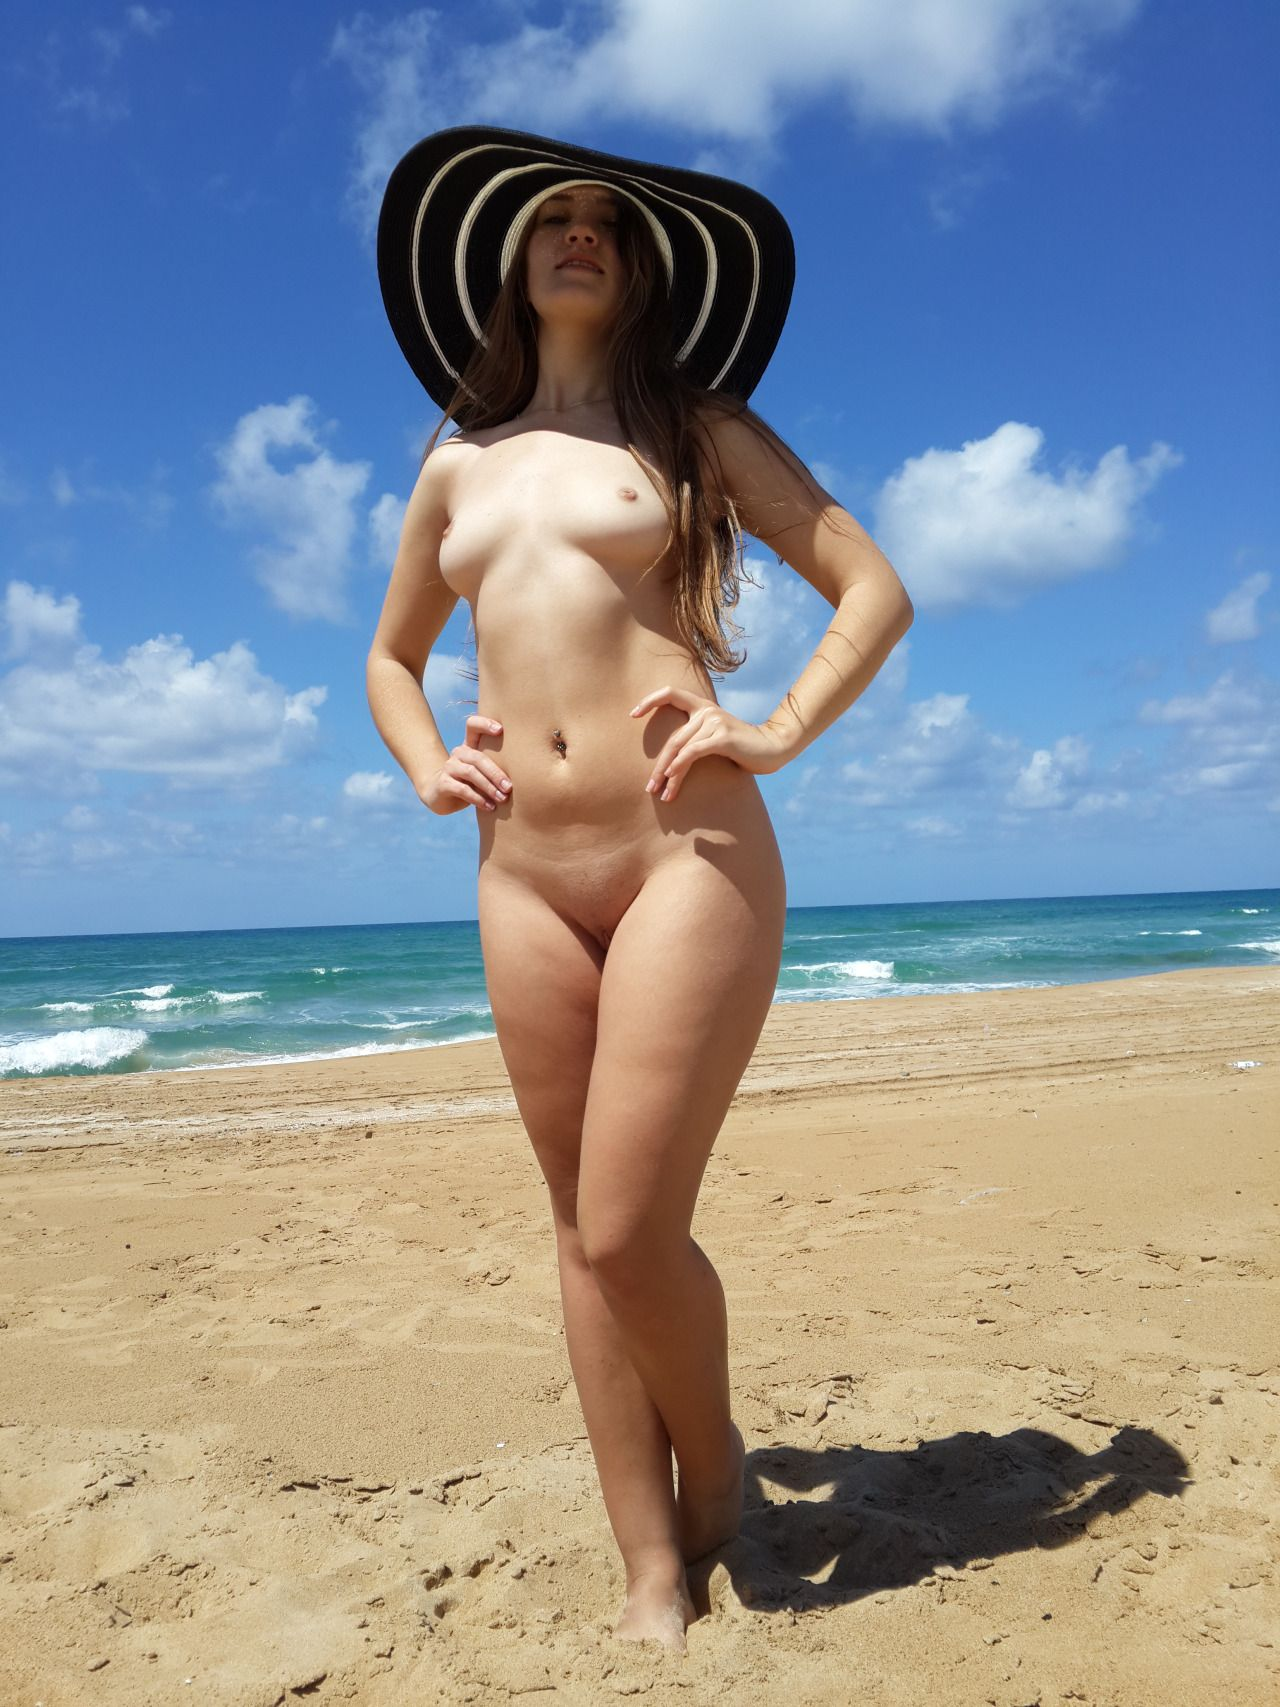 nudity pure nudist nude more All about public nudity, nude beach girls, family nudist camps, pure nudism  and naturism.